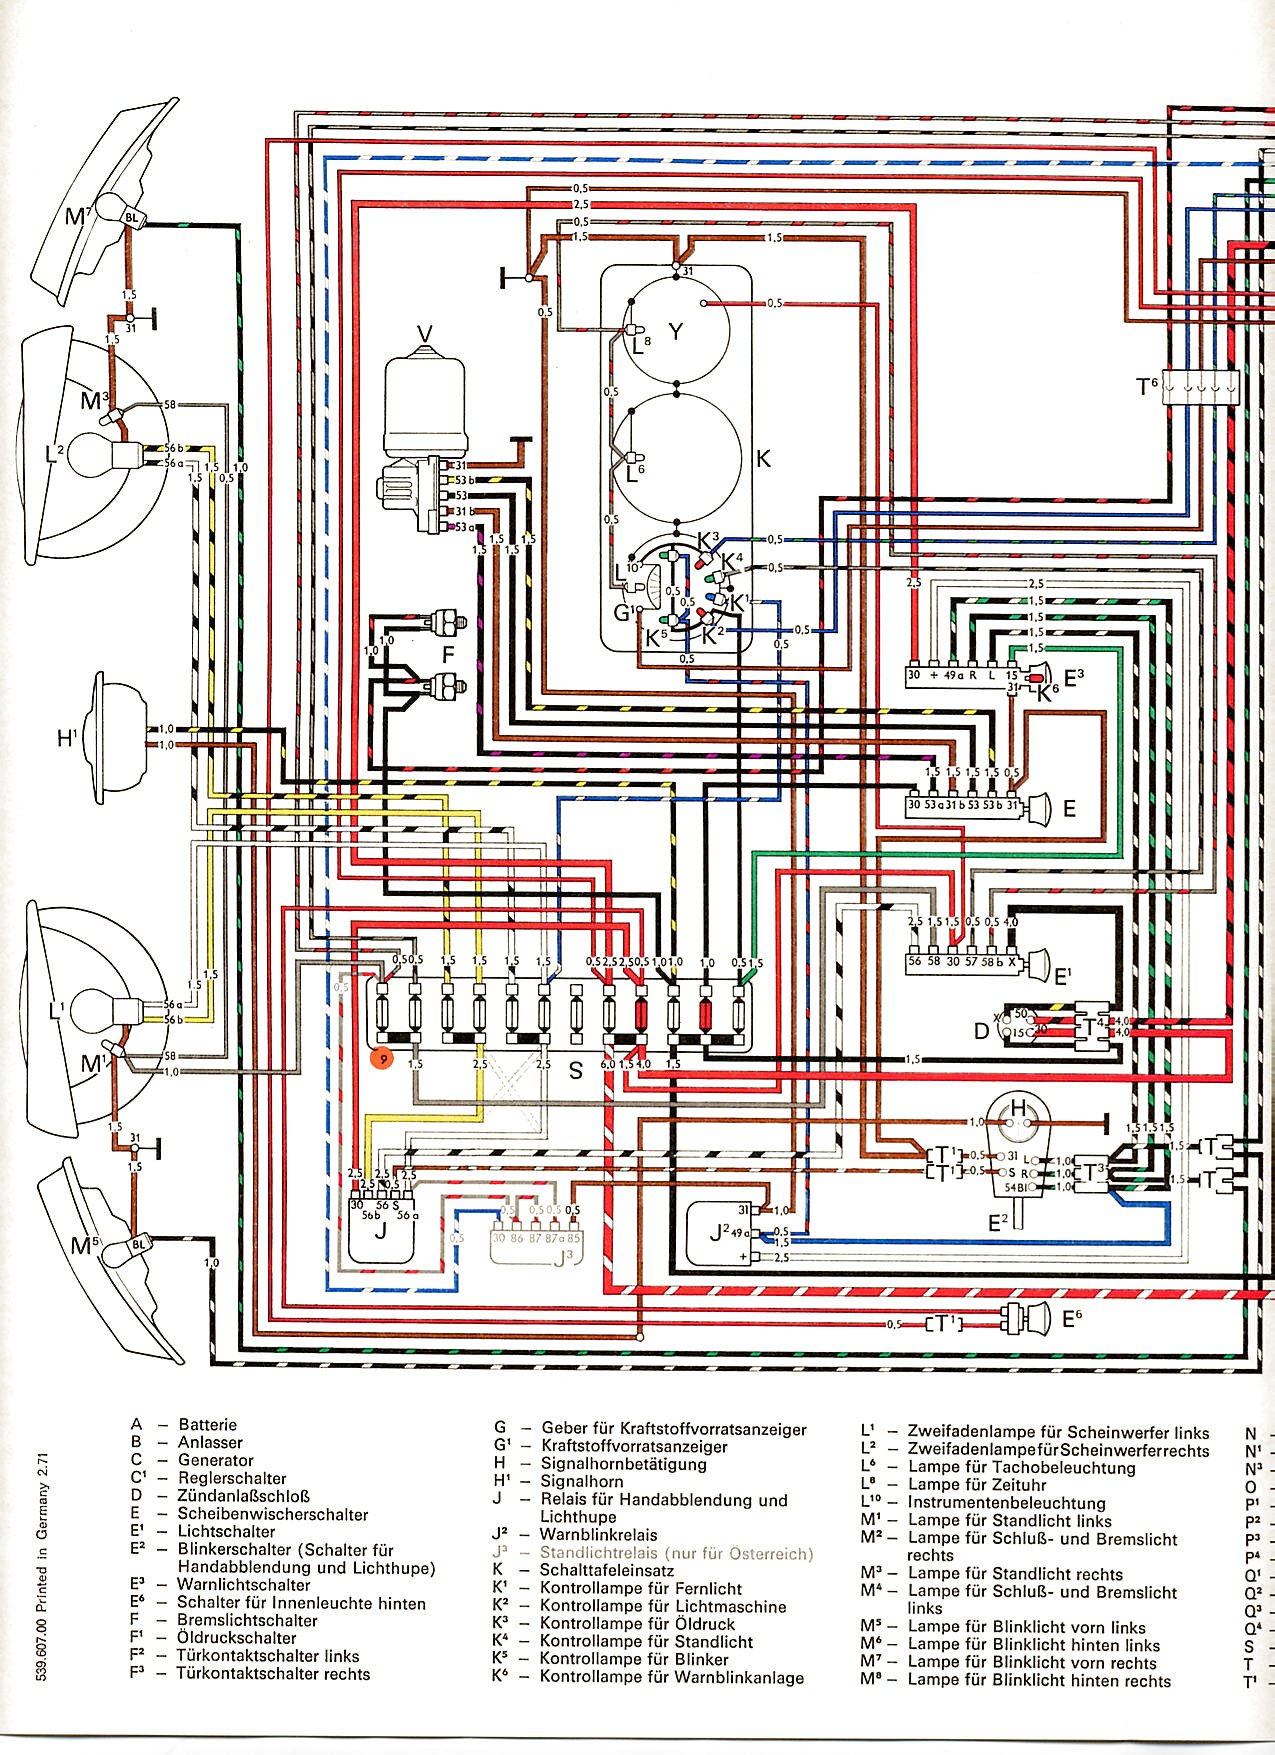 Vintagebus vw bus and other wiring diagrams com vw bus and other wiring diagrams swarovskicordoba Choice Image